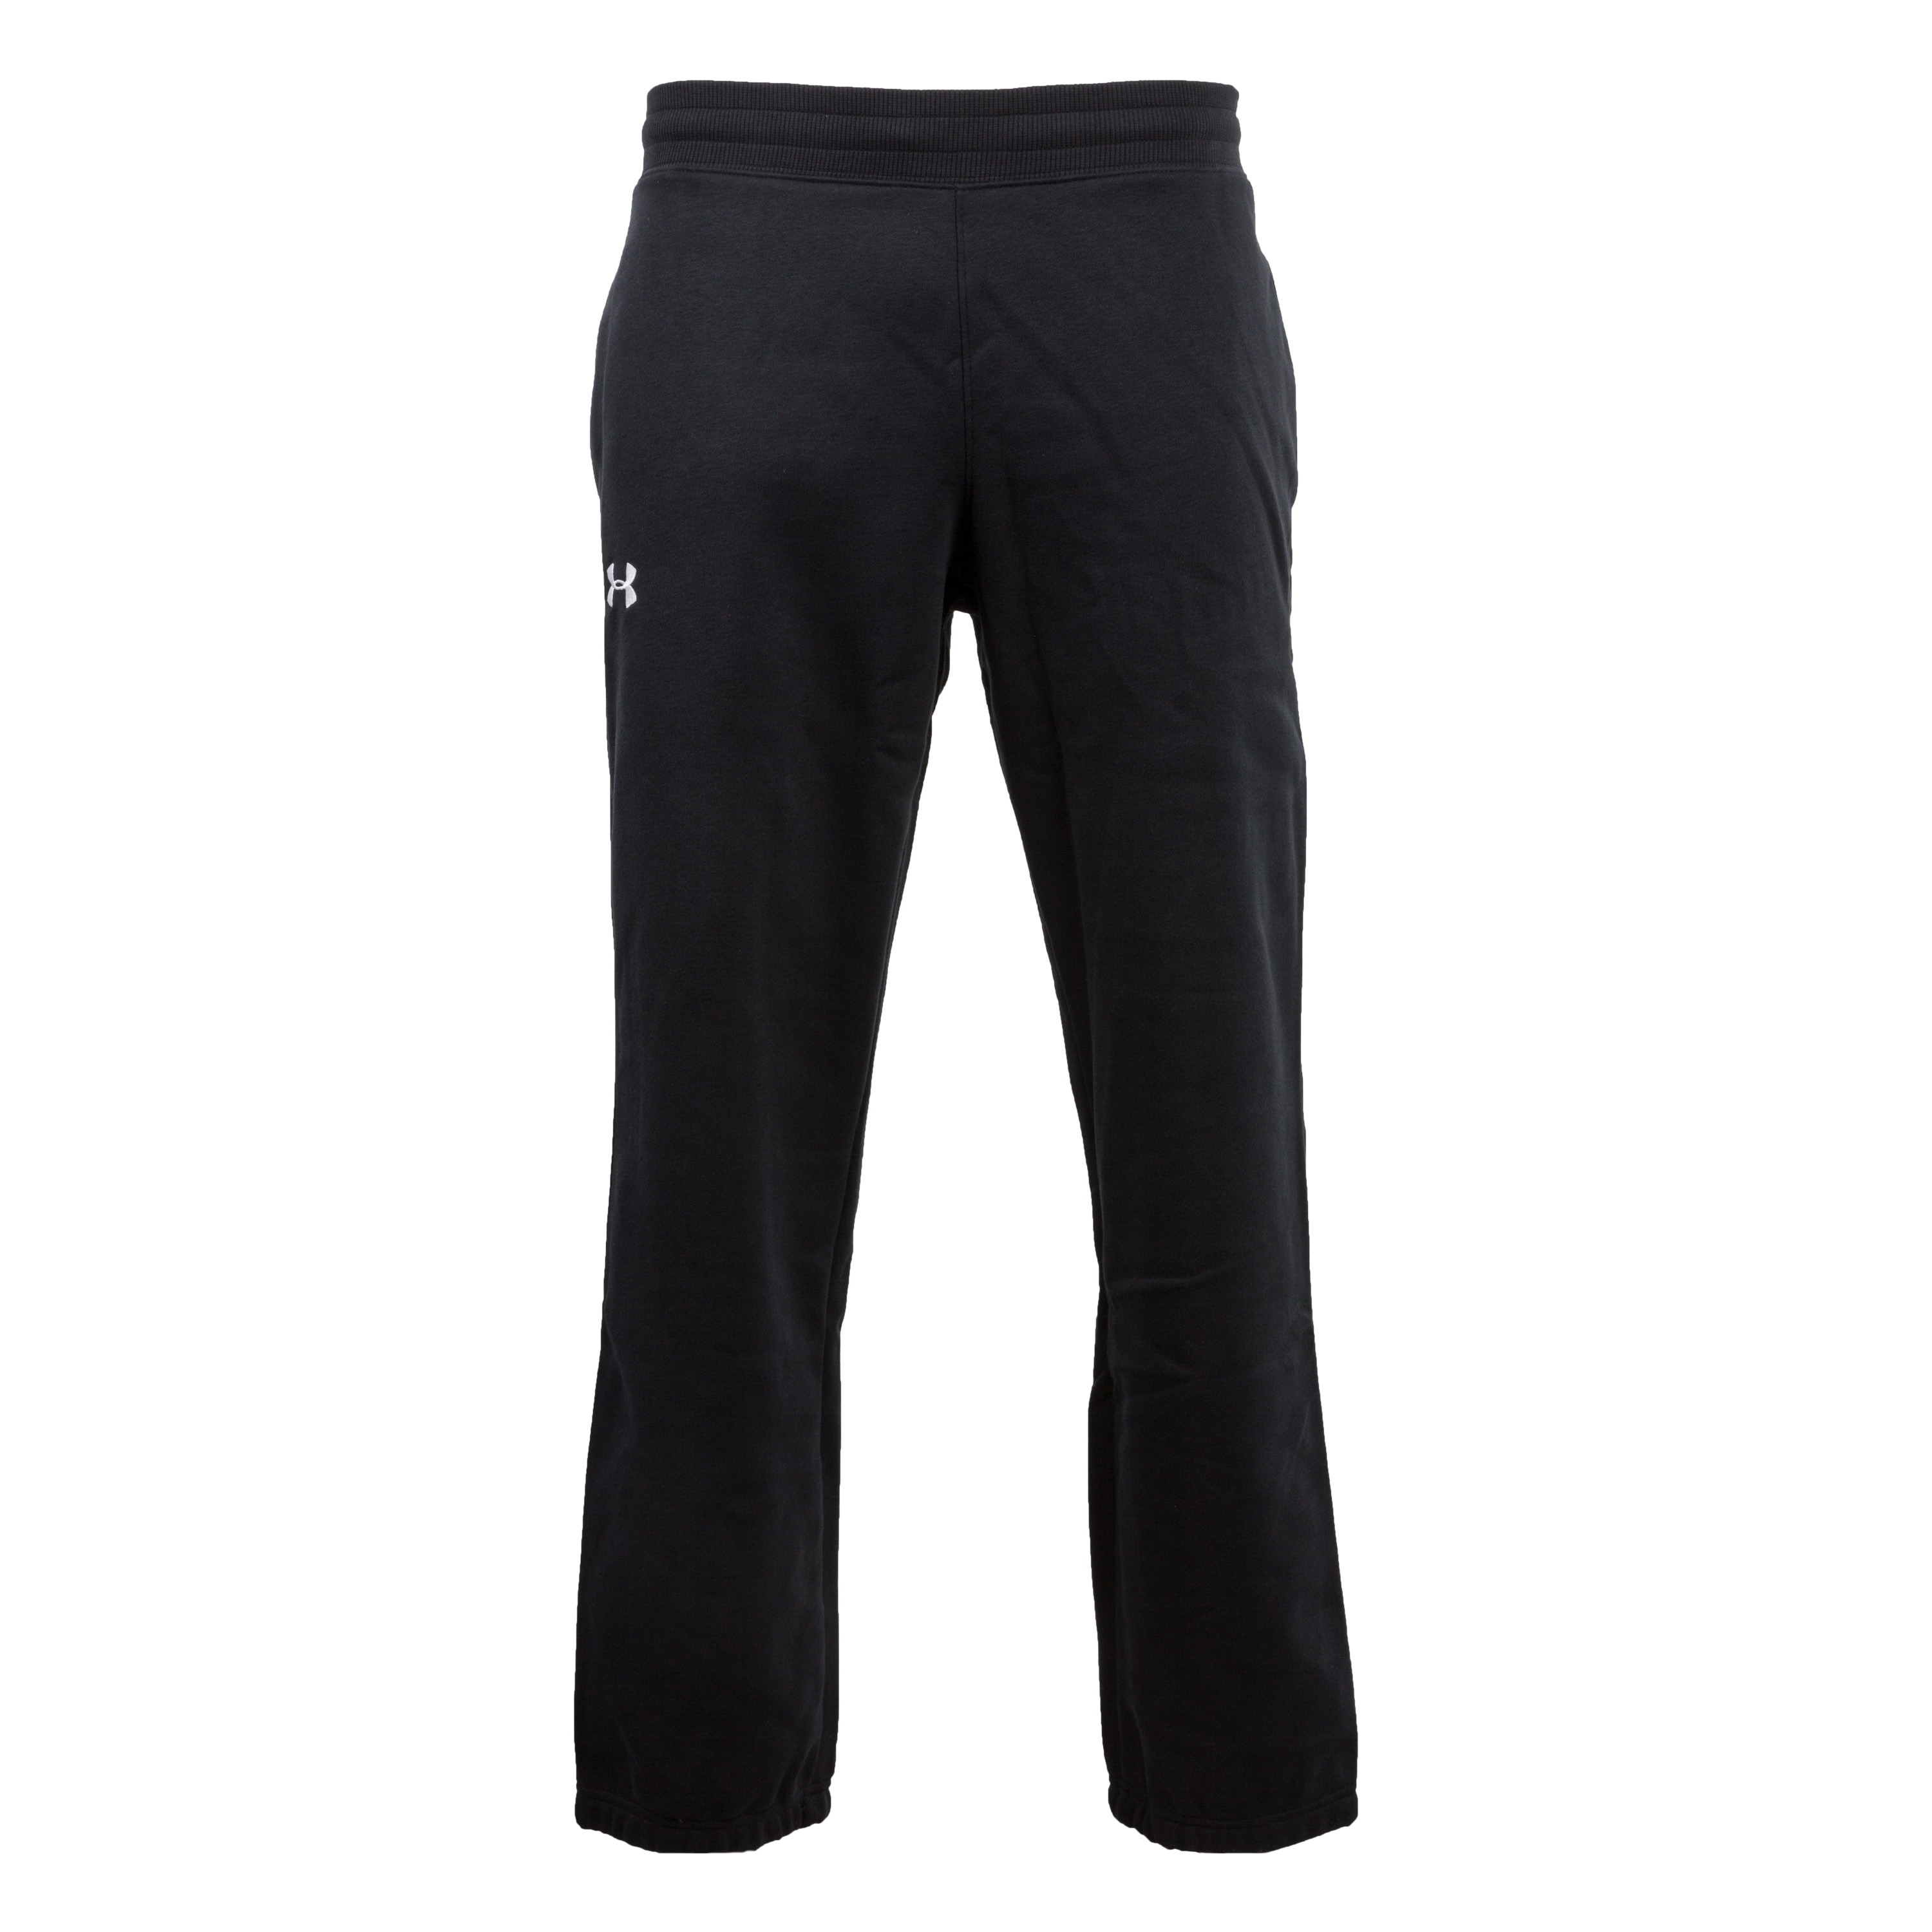 Under Armour Storm Cotton Cuffed Pants black